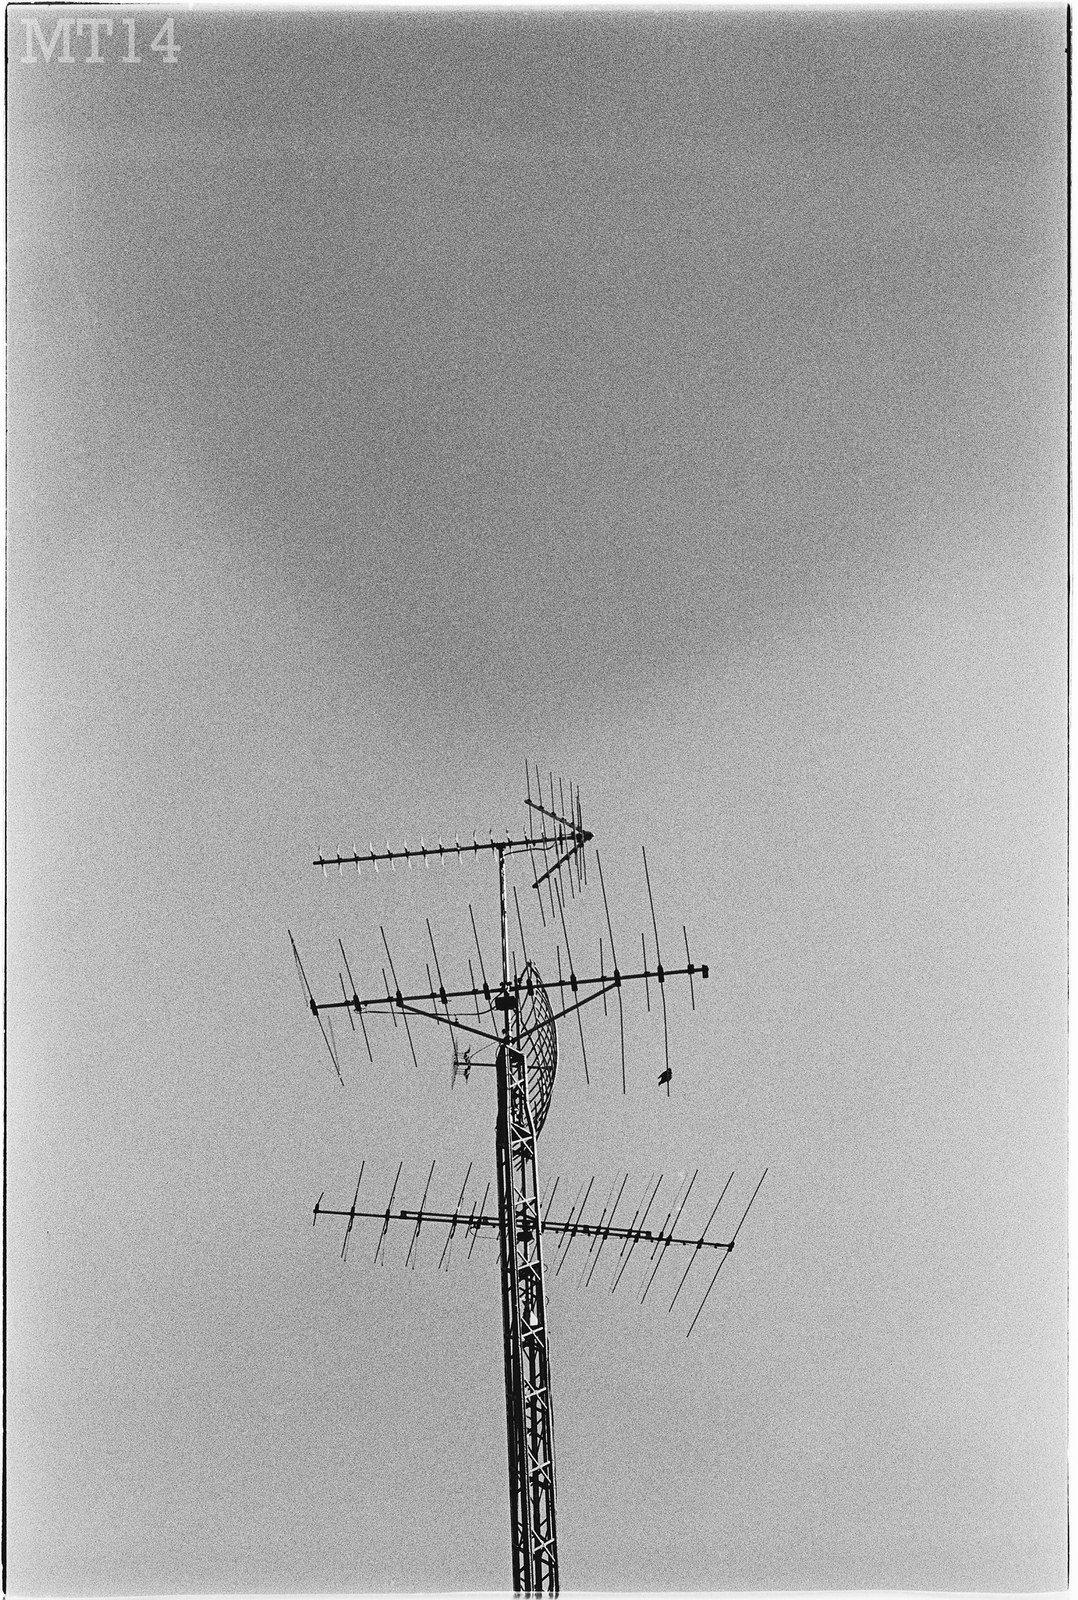 A bird sits atop an old TV antenna near Port Franks, Ontario in June 2014